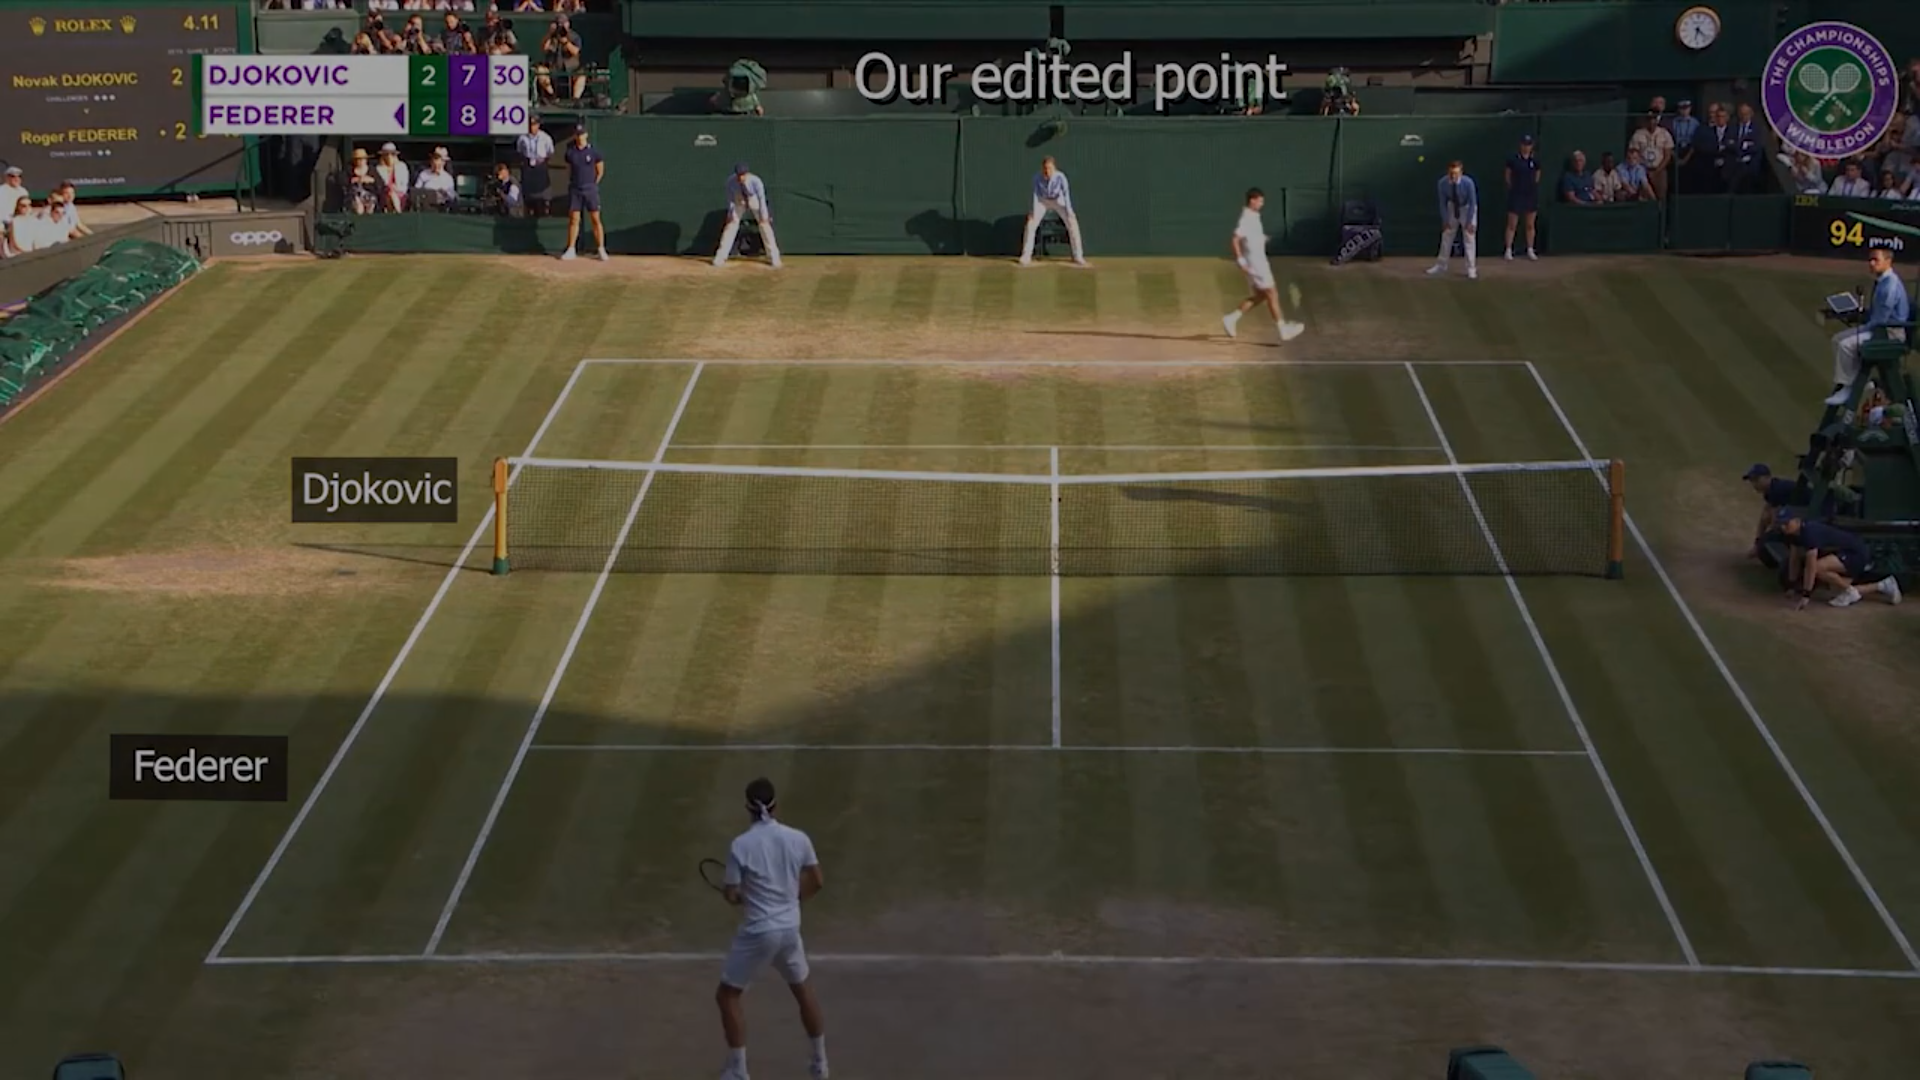 Vid2Player: Controllable Video Sprites that Behave and Appear like Professional Tennis Players. Retrieved from Youtube.